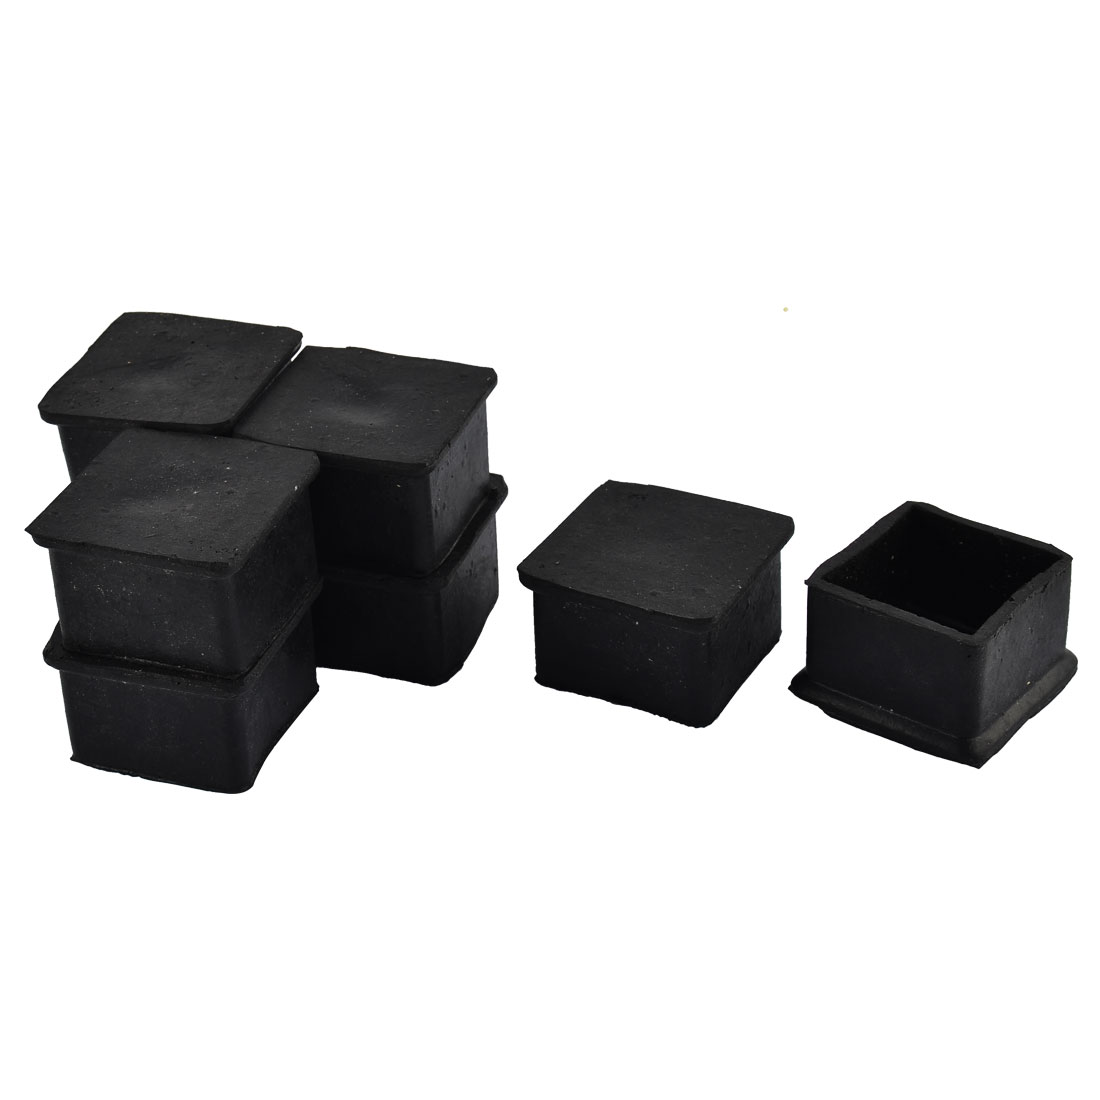 Furniture Table Chair Rubber Square Shape Foot Protector Pad Black 8pcs